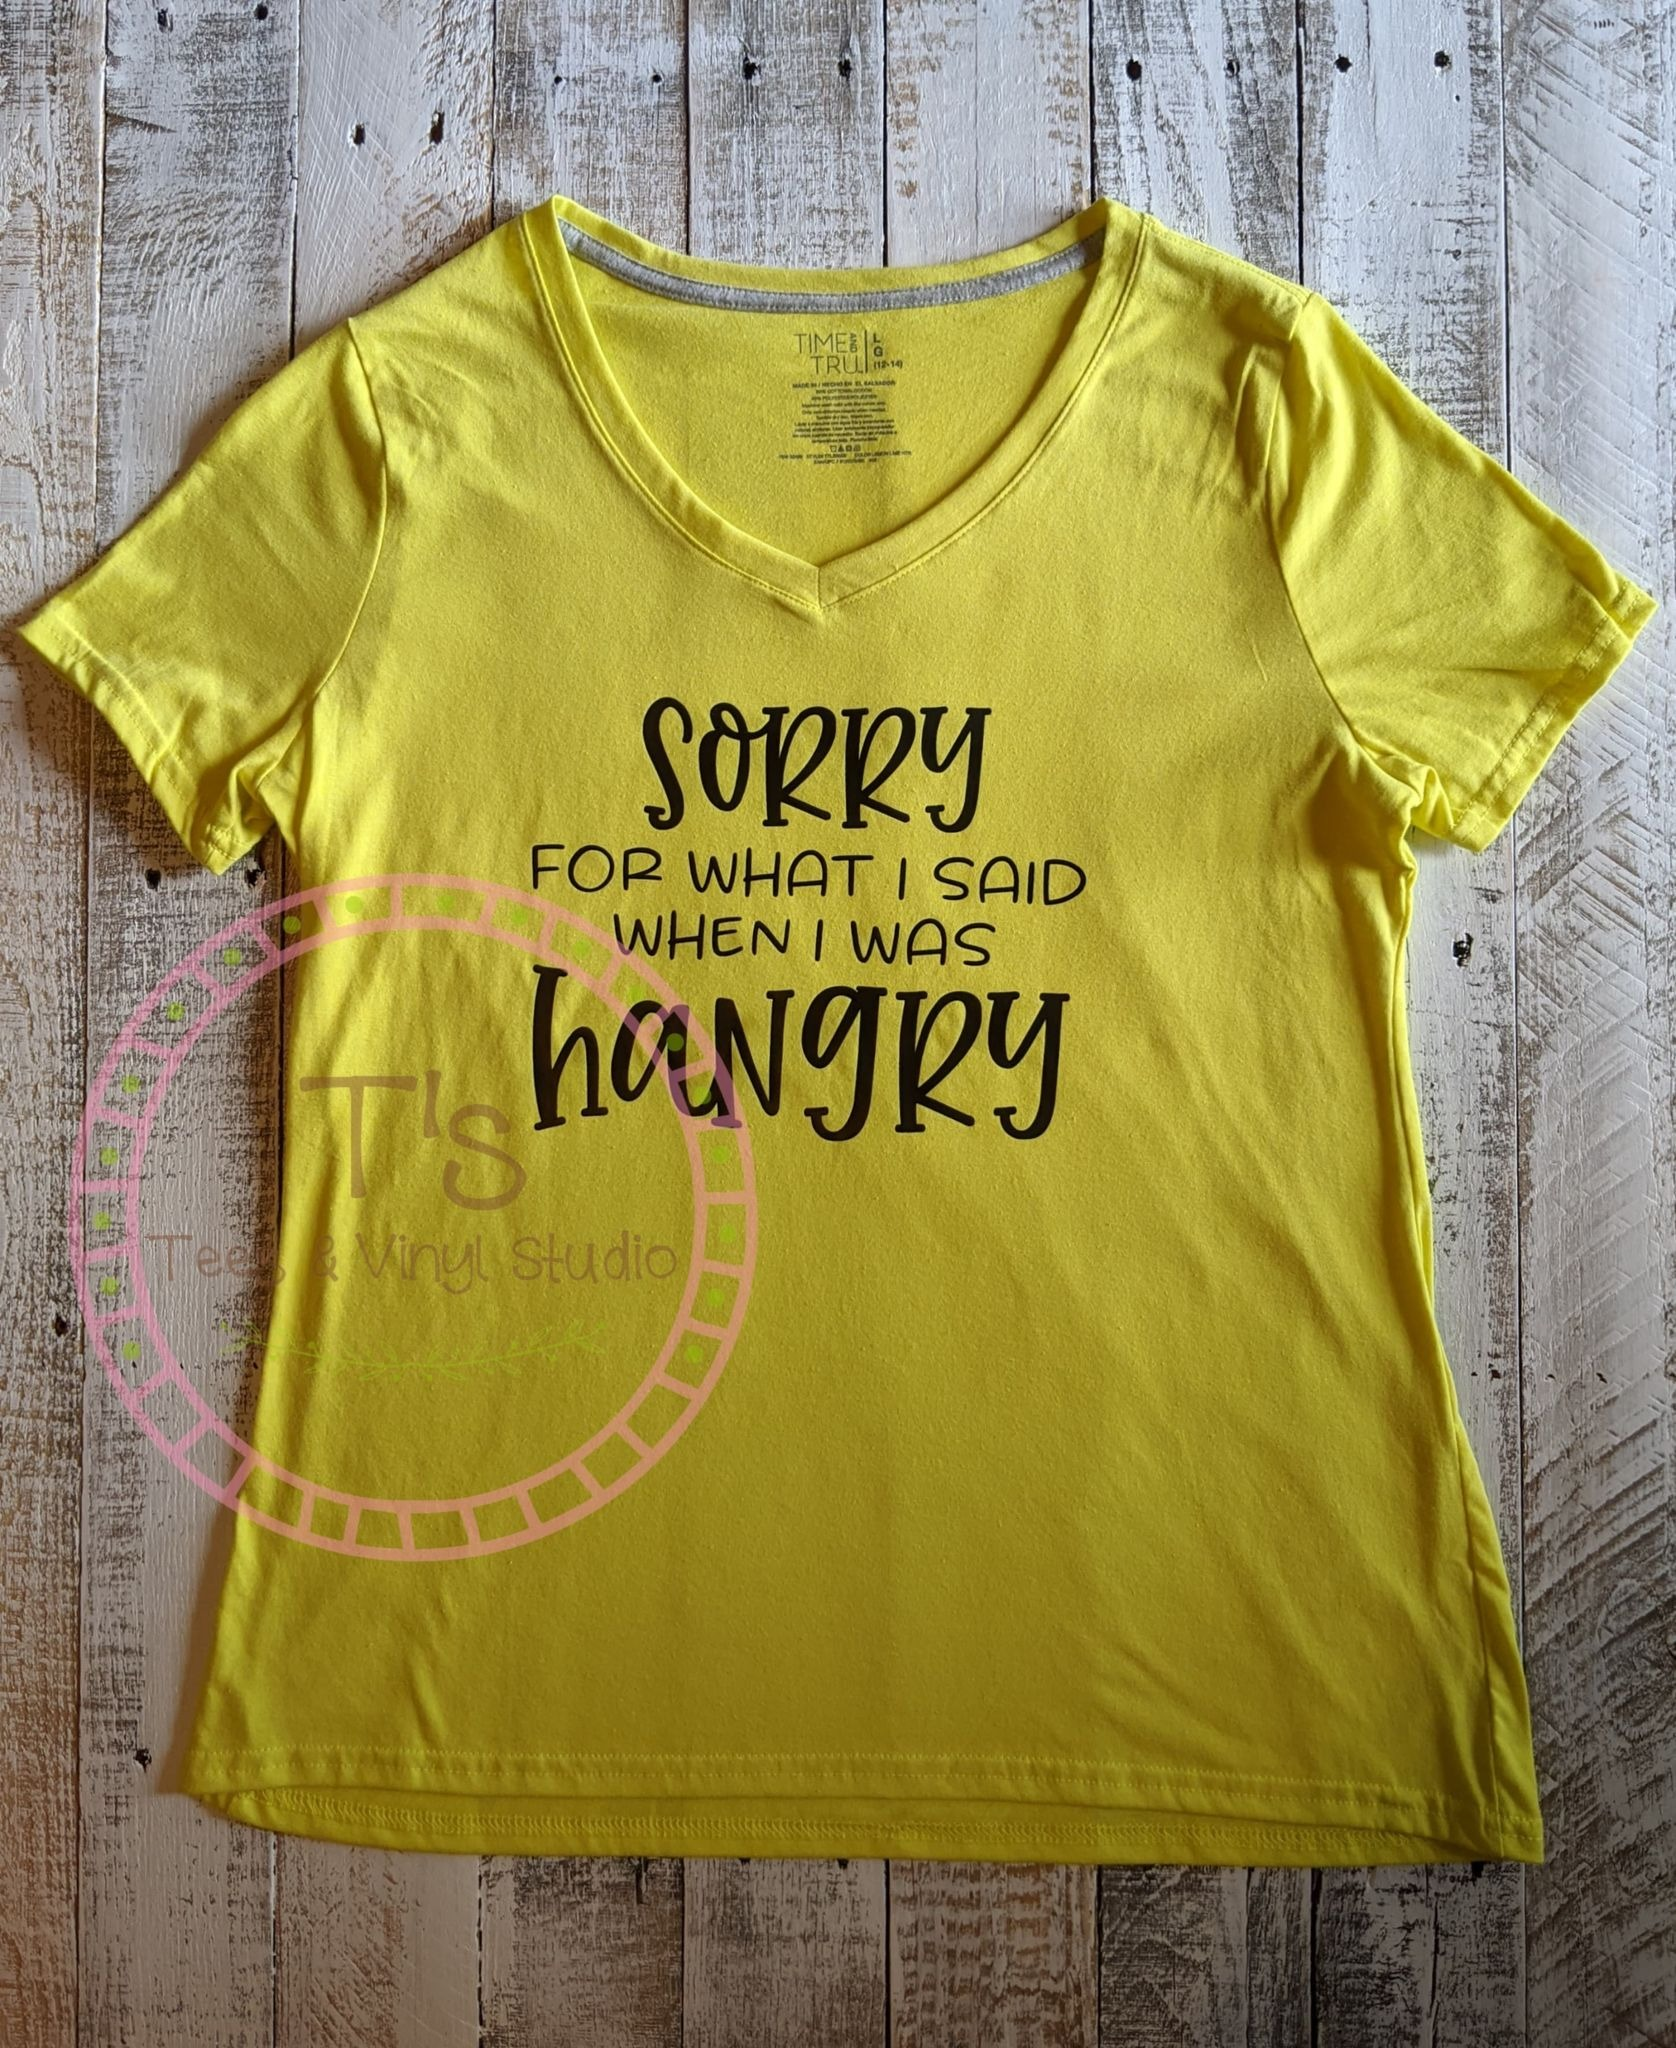 Large Sorry For What I Said When I Was Hangry T-Shirt